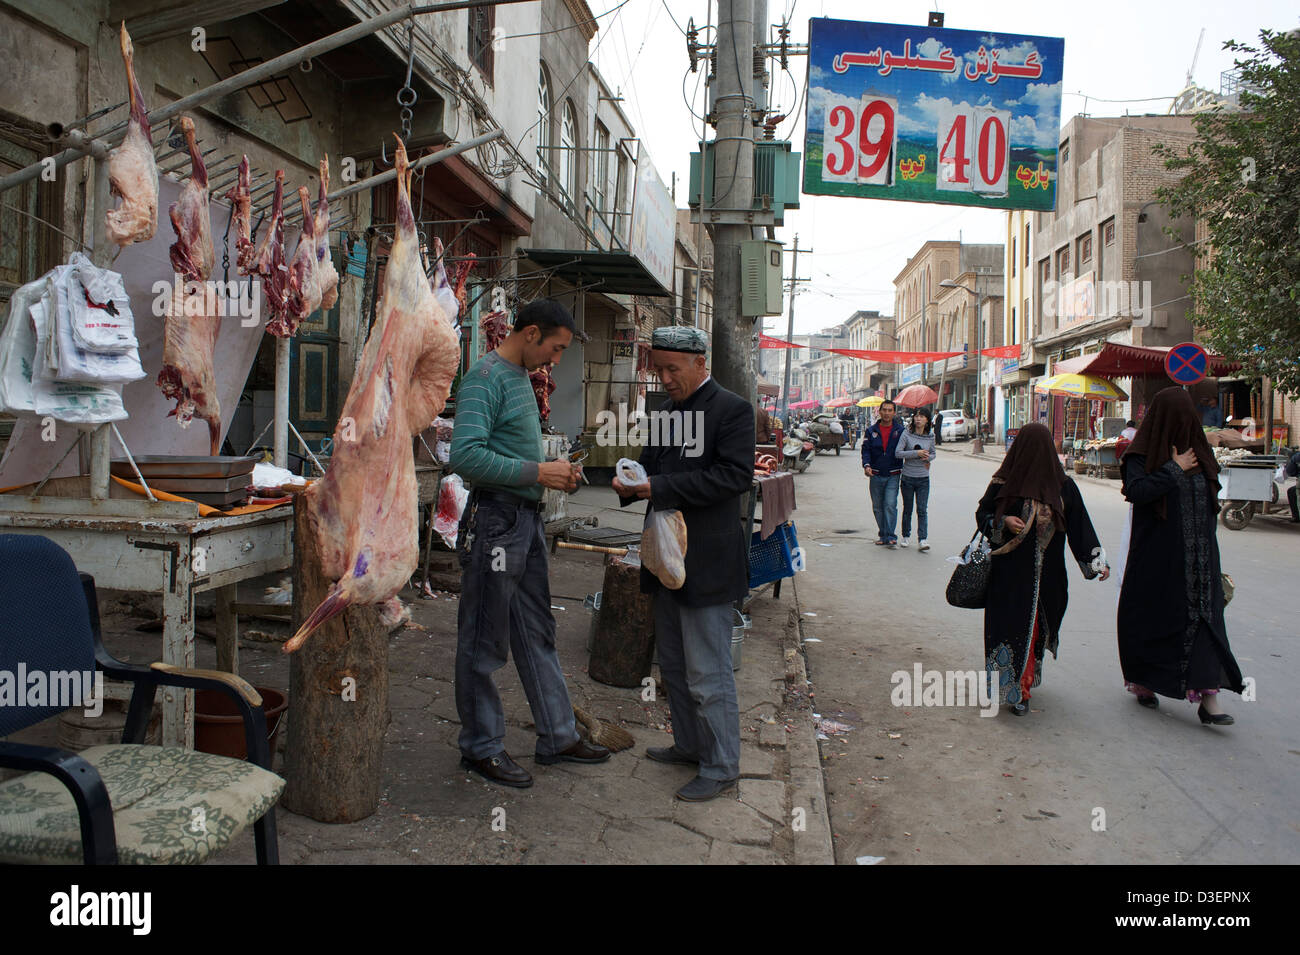 meat seller - Stock Image